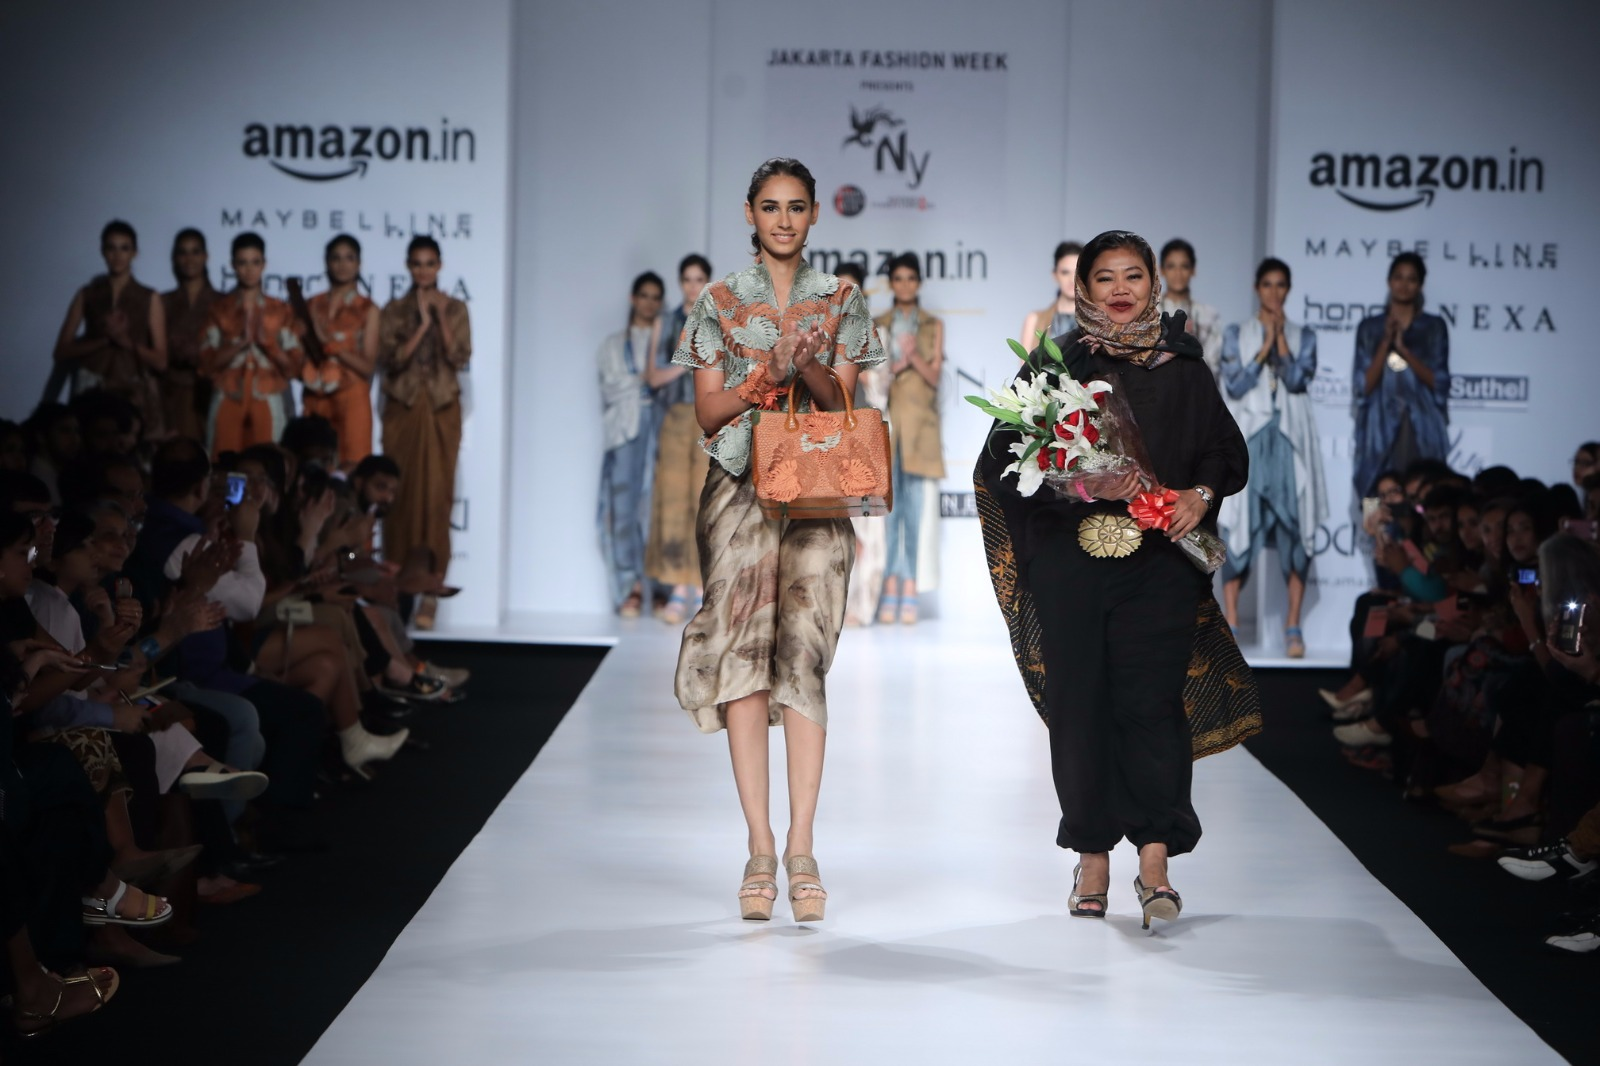 http://www.talksassy.com/wp-content/uploads/2017/03/Amazon-India-Fashion-Week-Autumn-Winter-2017-18.jpg